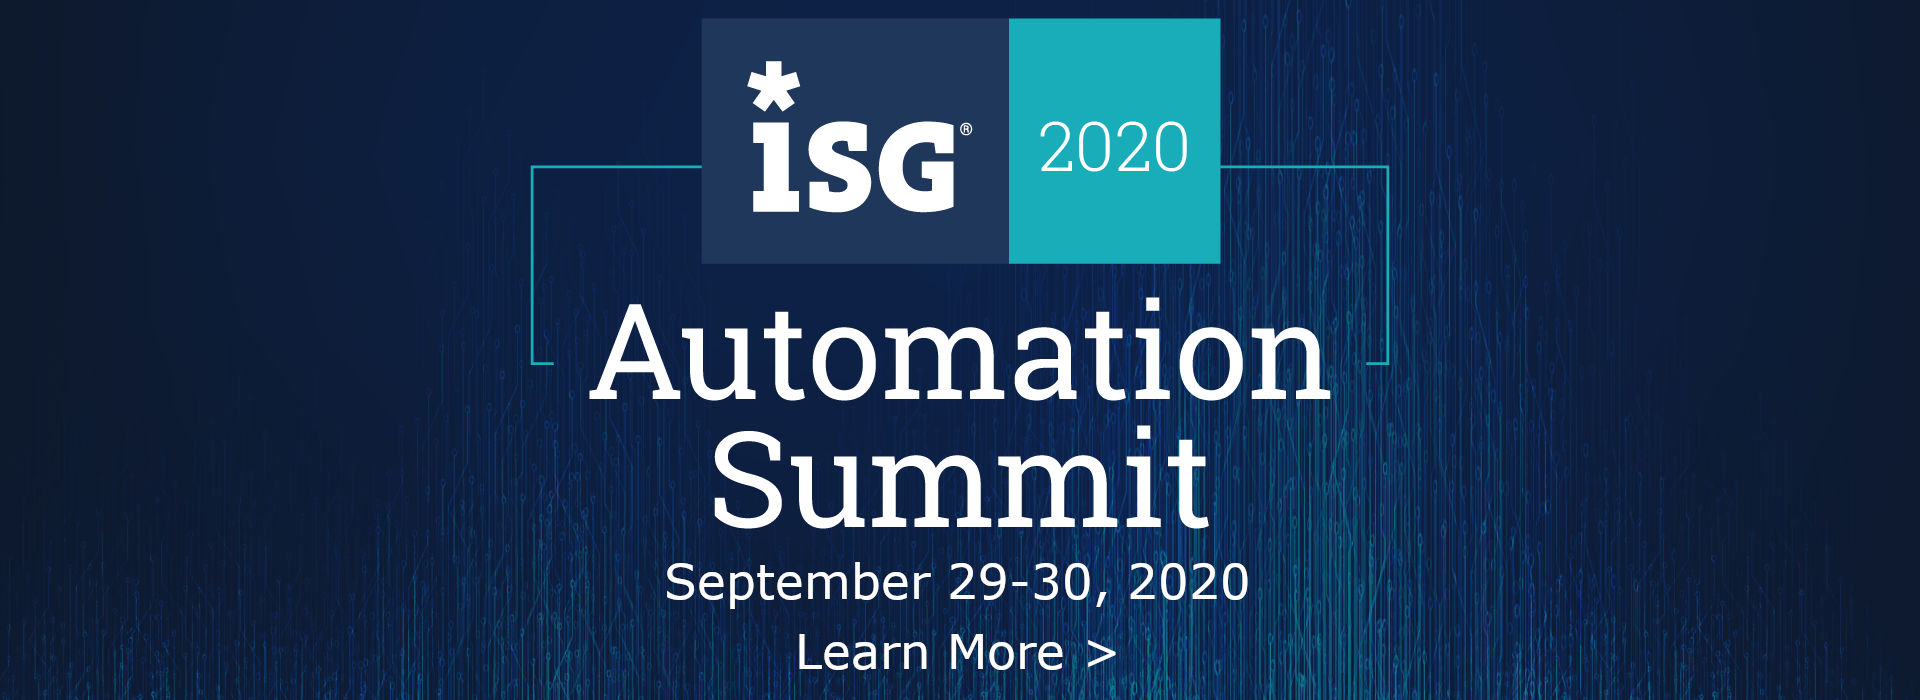 Automation-Summit-2020-carousel